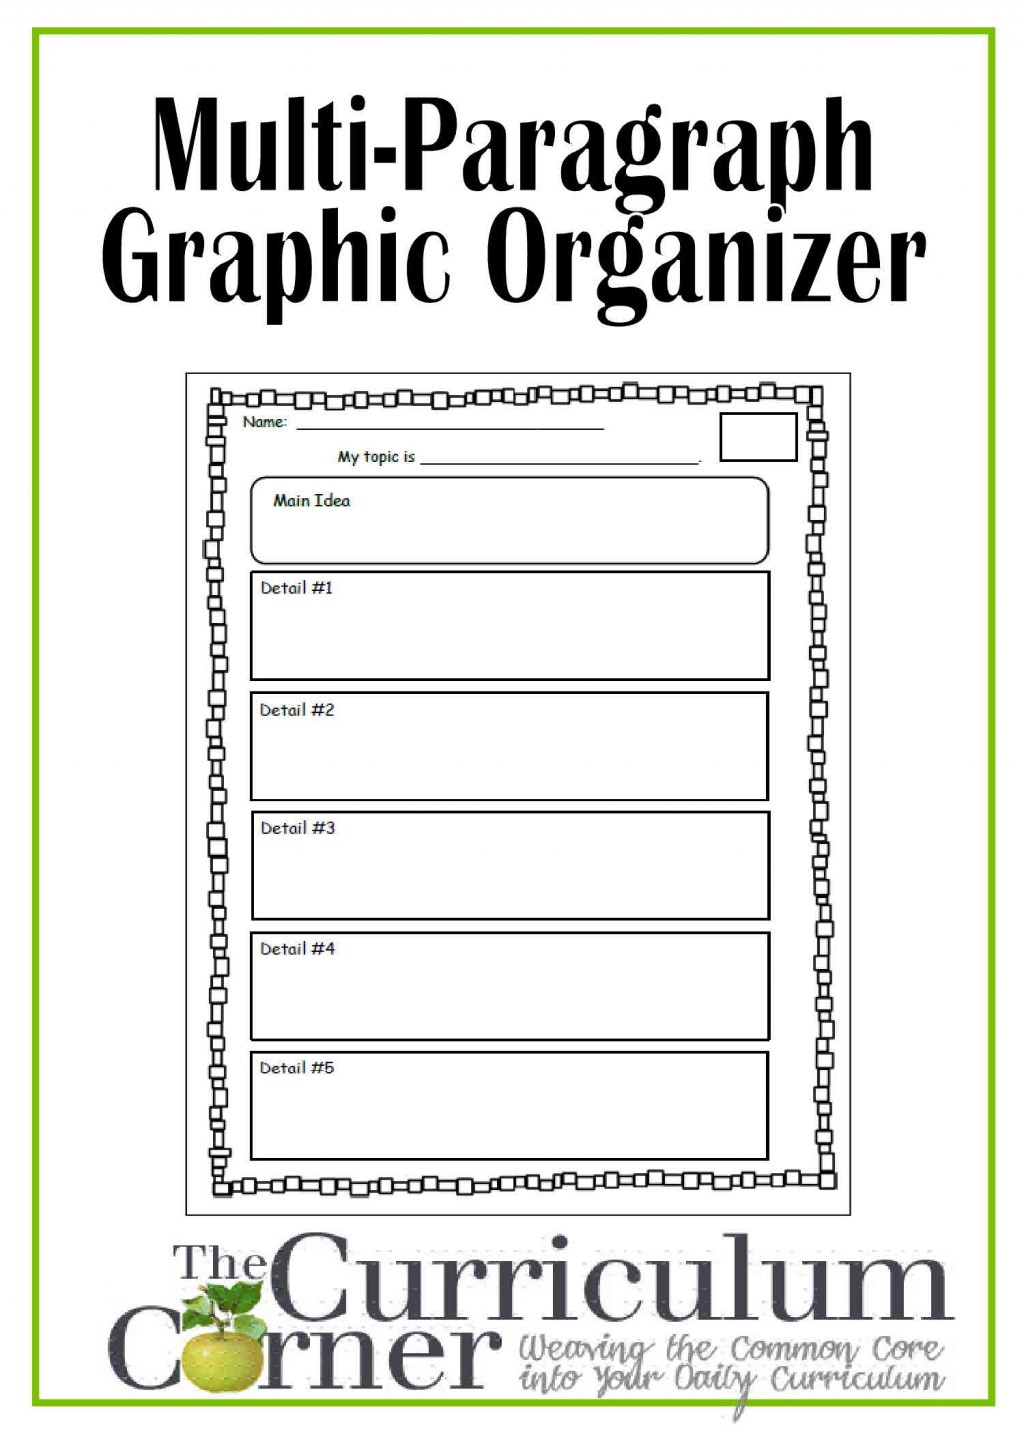 018 Graphic Organizer For Multi Paragraph Research Papers The Multipara Best Organizers Writing Essays Informative Argumentative Literary Persuasive Free Descriptive Essay College Fascinating Informational Pdf 6th Grade Large